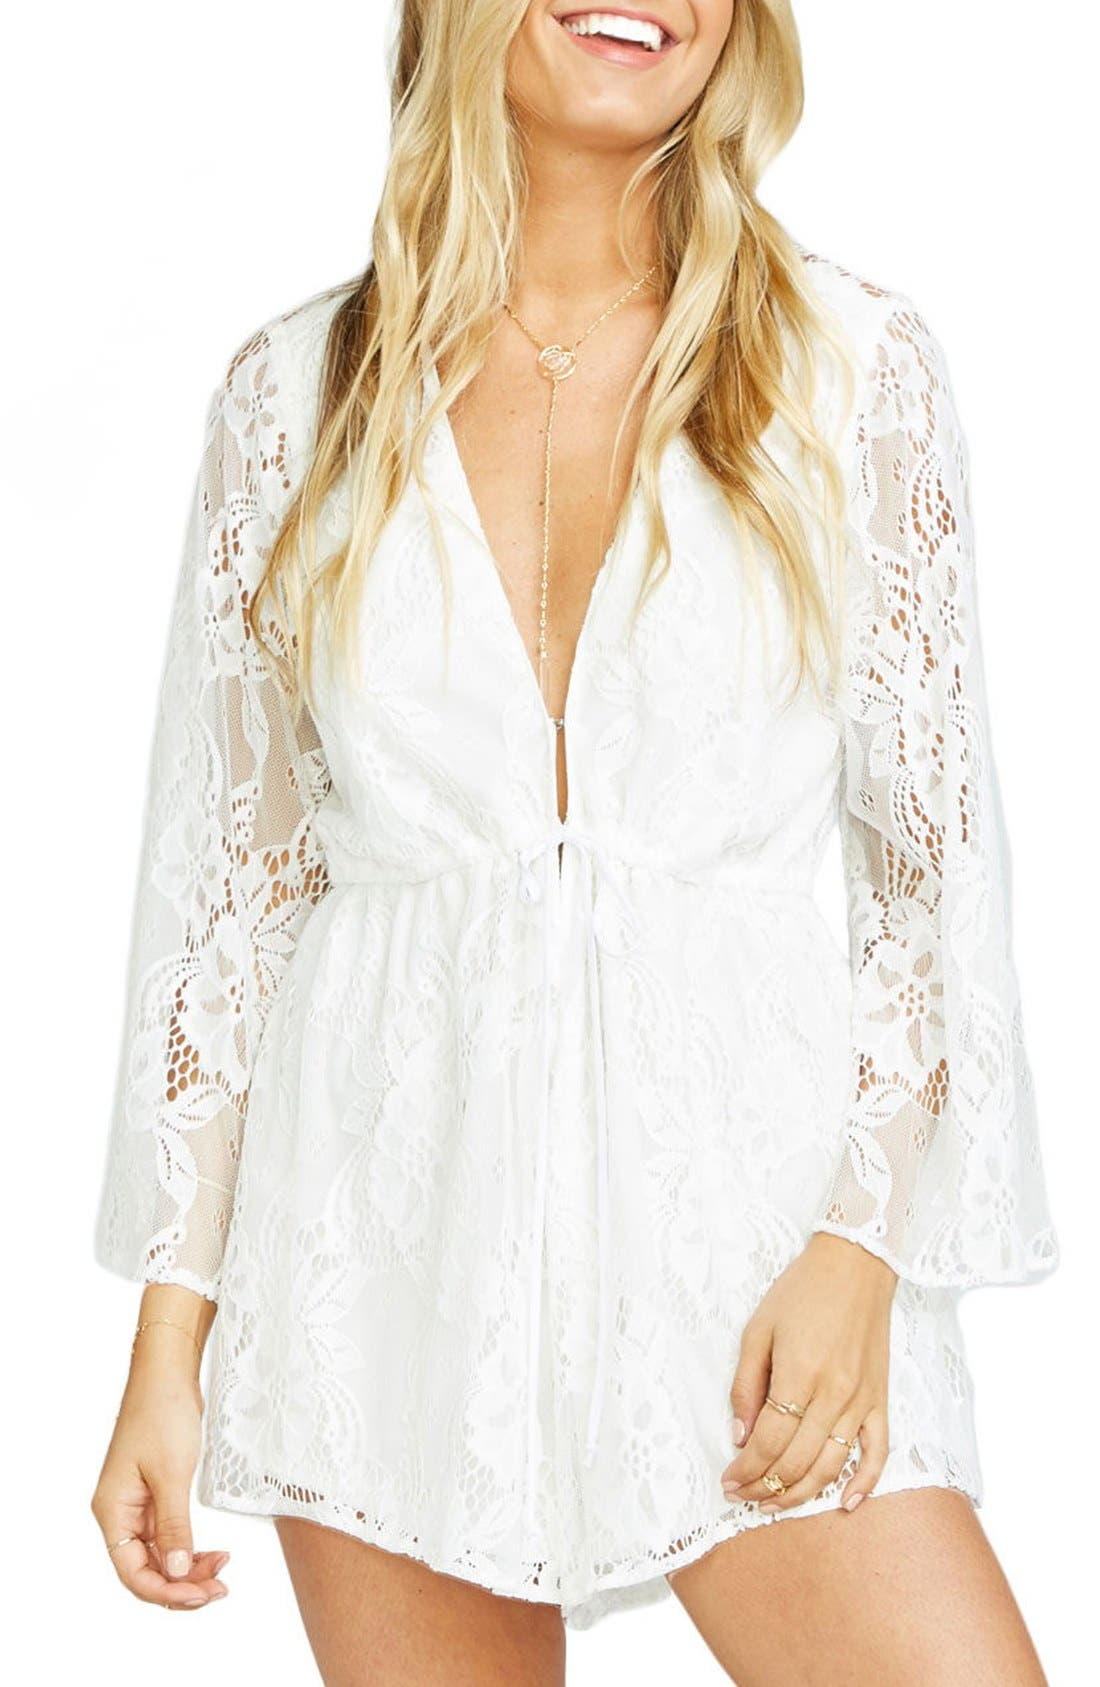 Roxy Plunging Tie Waist Romper,                             Main thumbnail 1, color,                             Lady In Lace